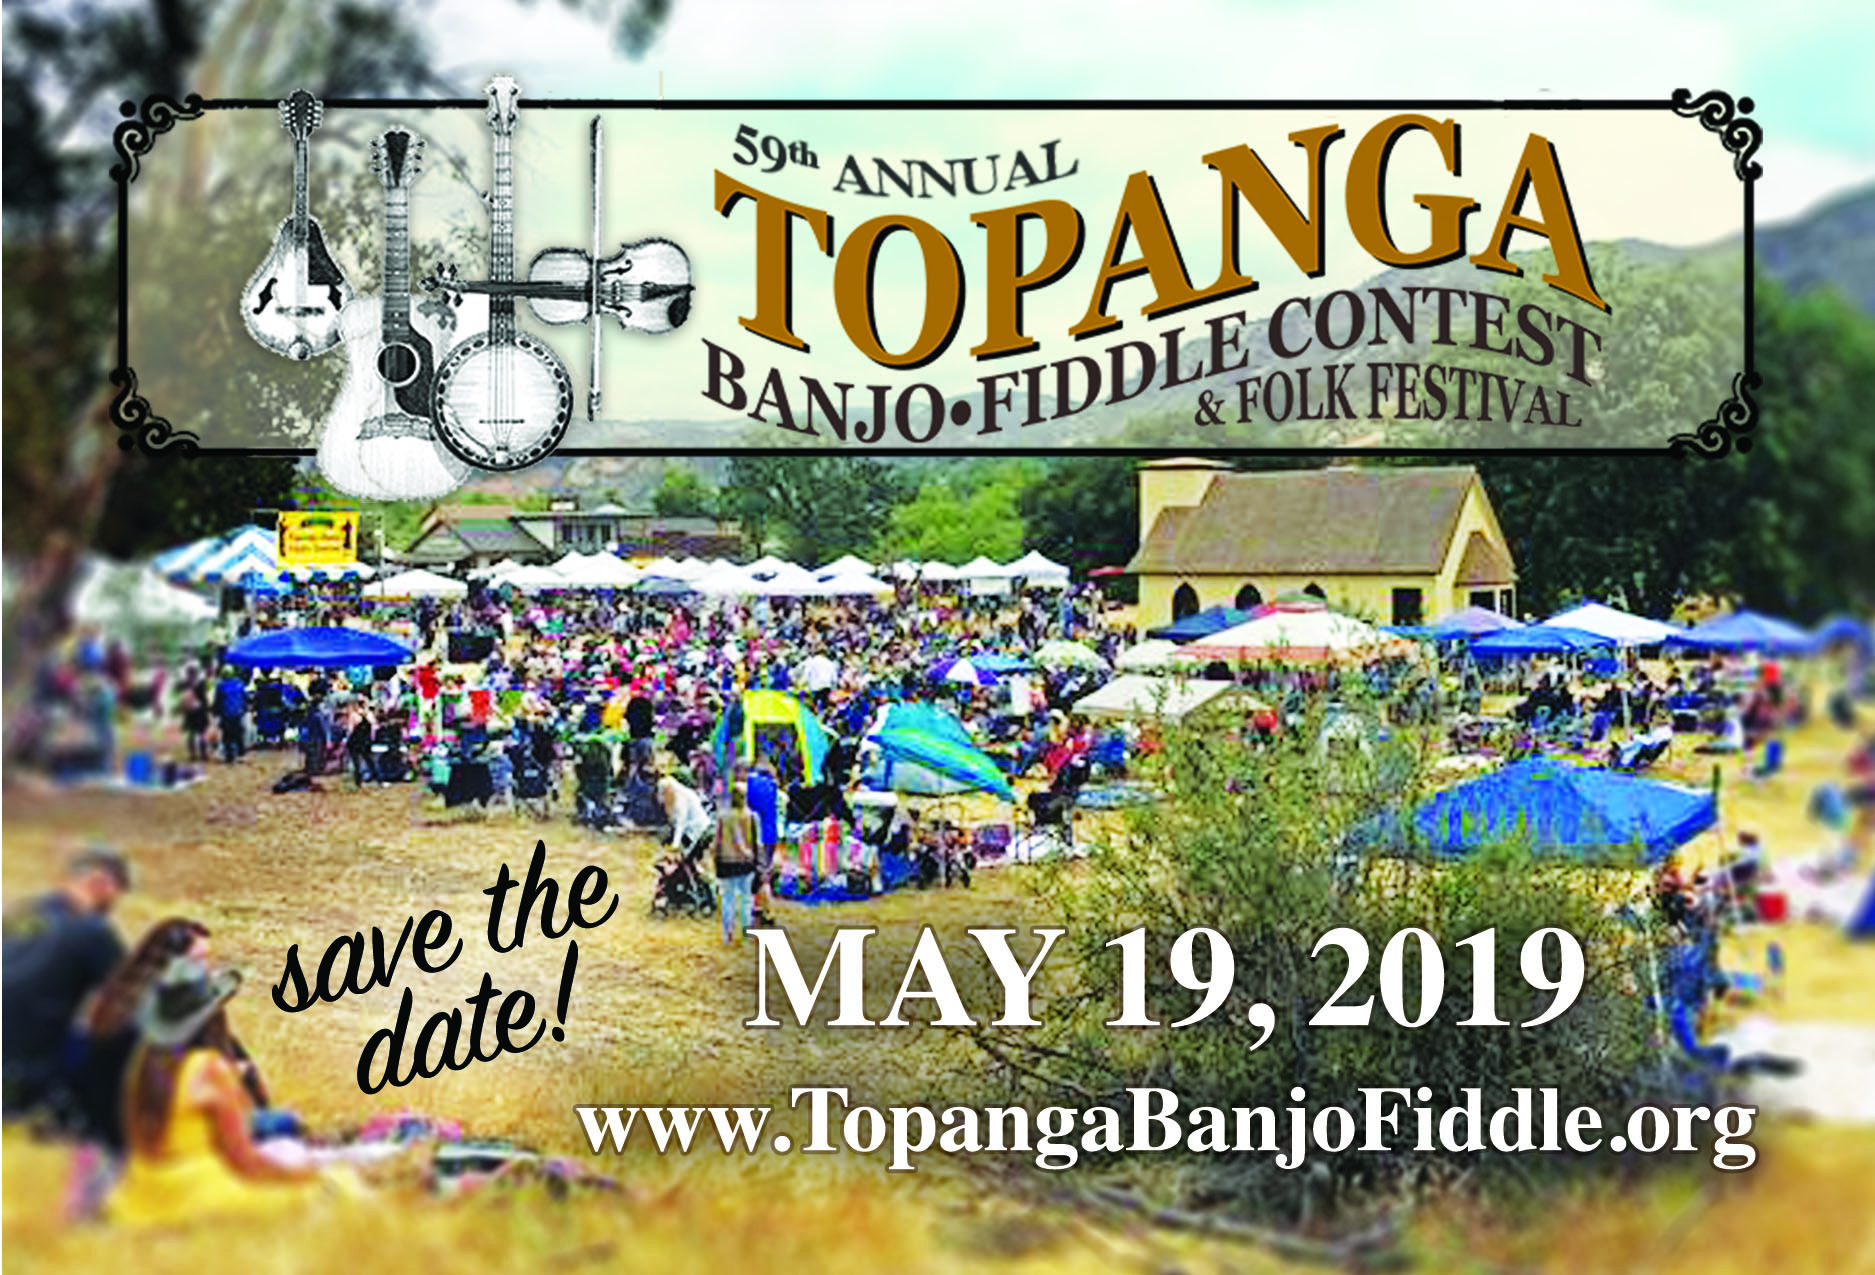 Topanga_Banjo_Fiddle_Music_Fair_Festival_ATM_Rental_Company_for_Special_Events_Fairs_and_Festivals-in_Los_Angeles_California.jpg